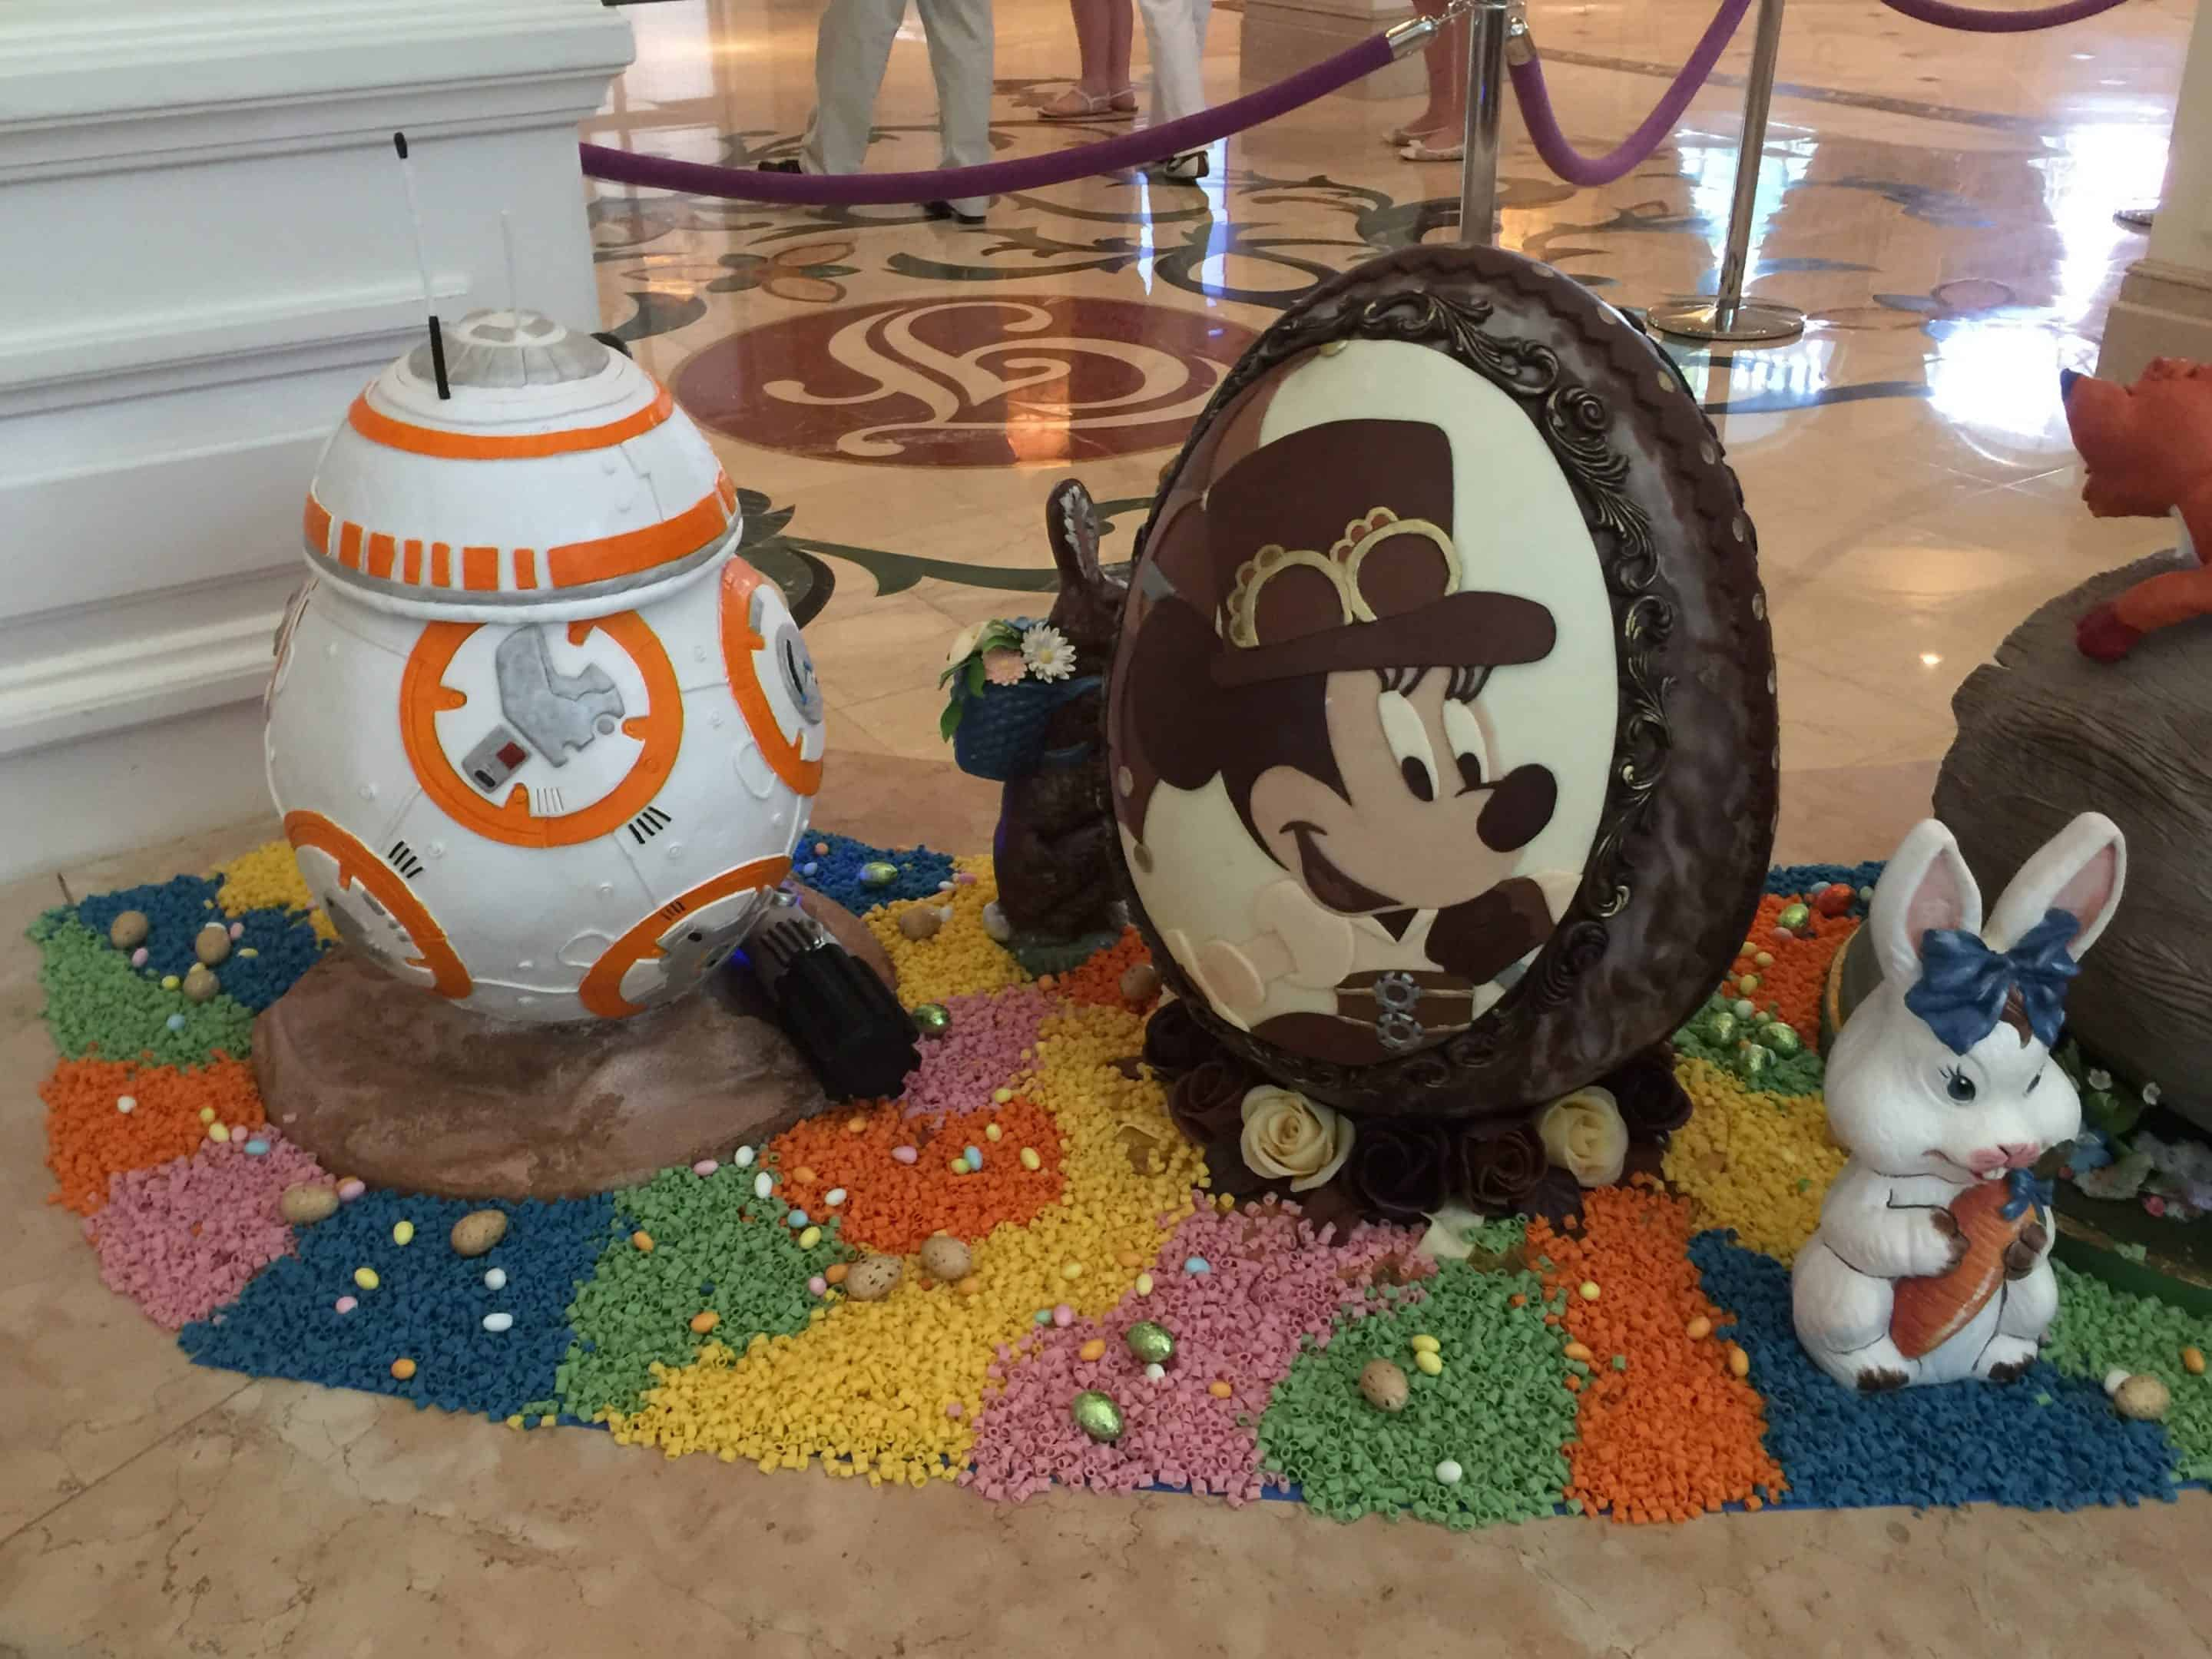 Easter Egg Masterpieces at Disney's Grand Floridian Resort